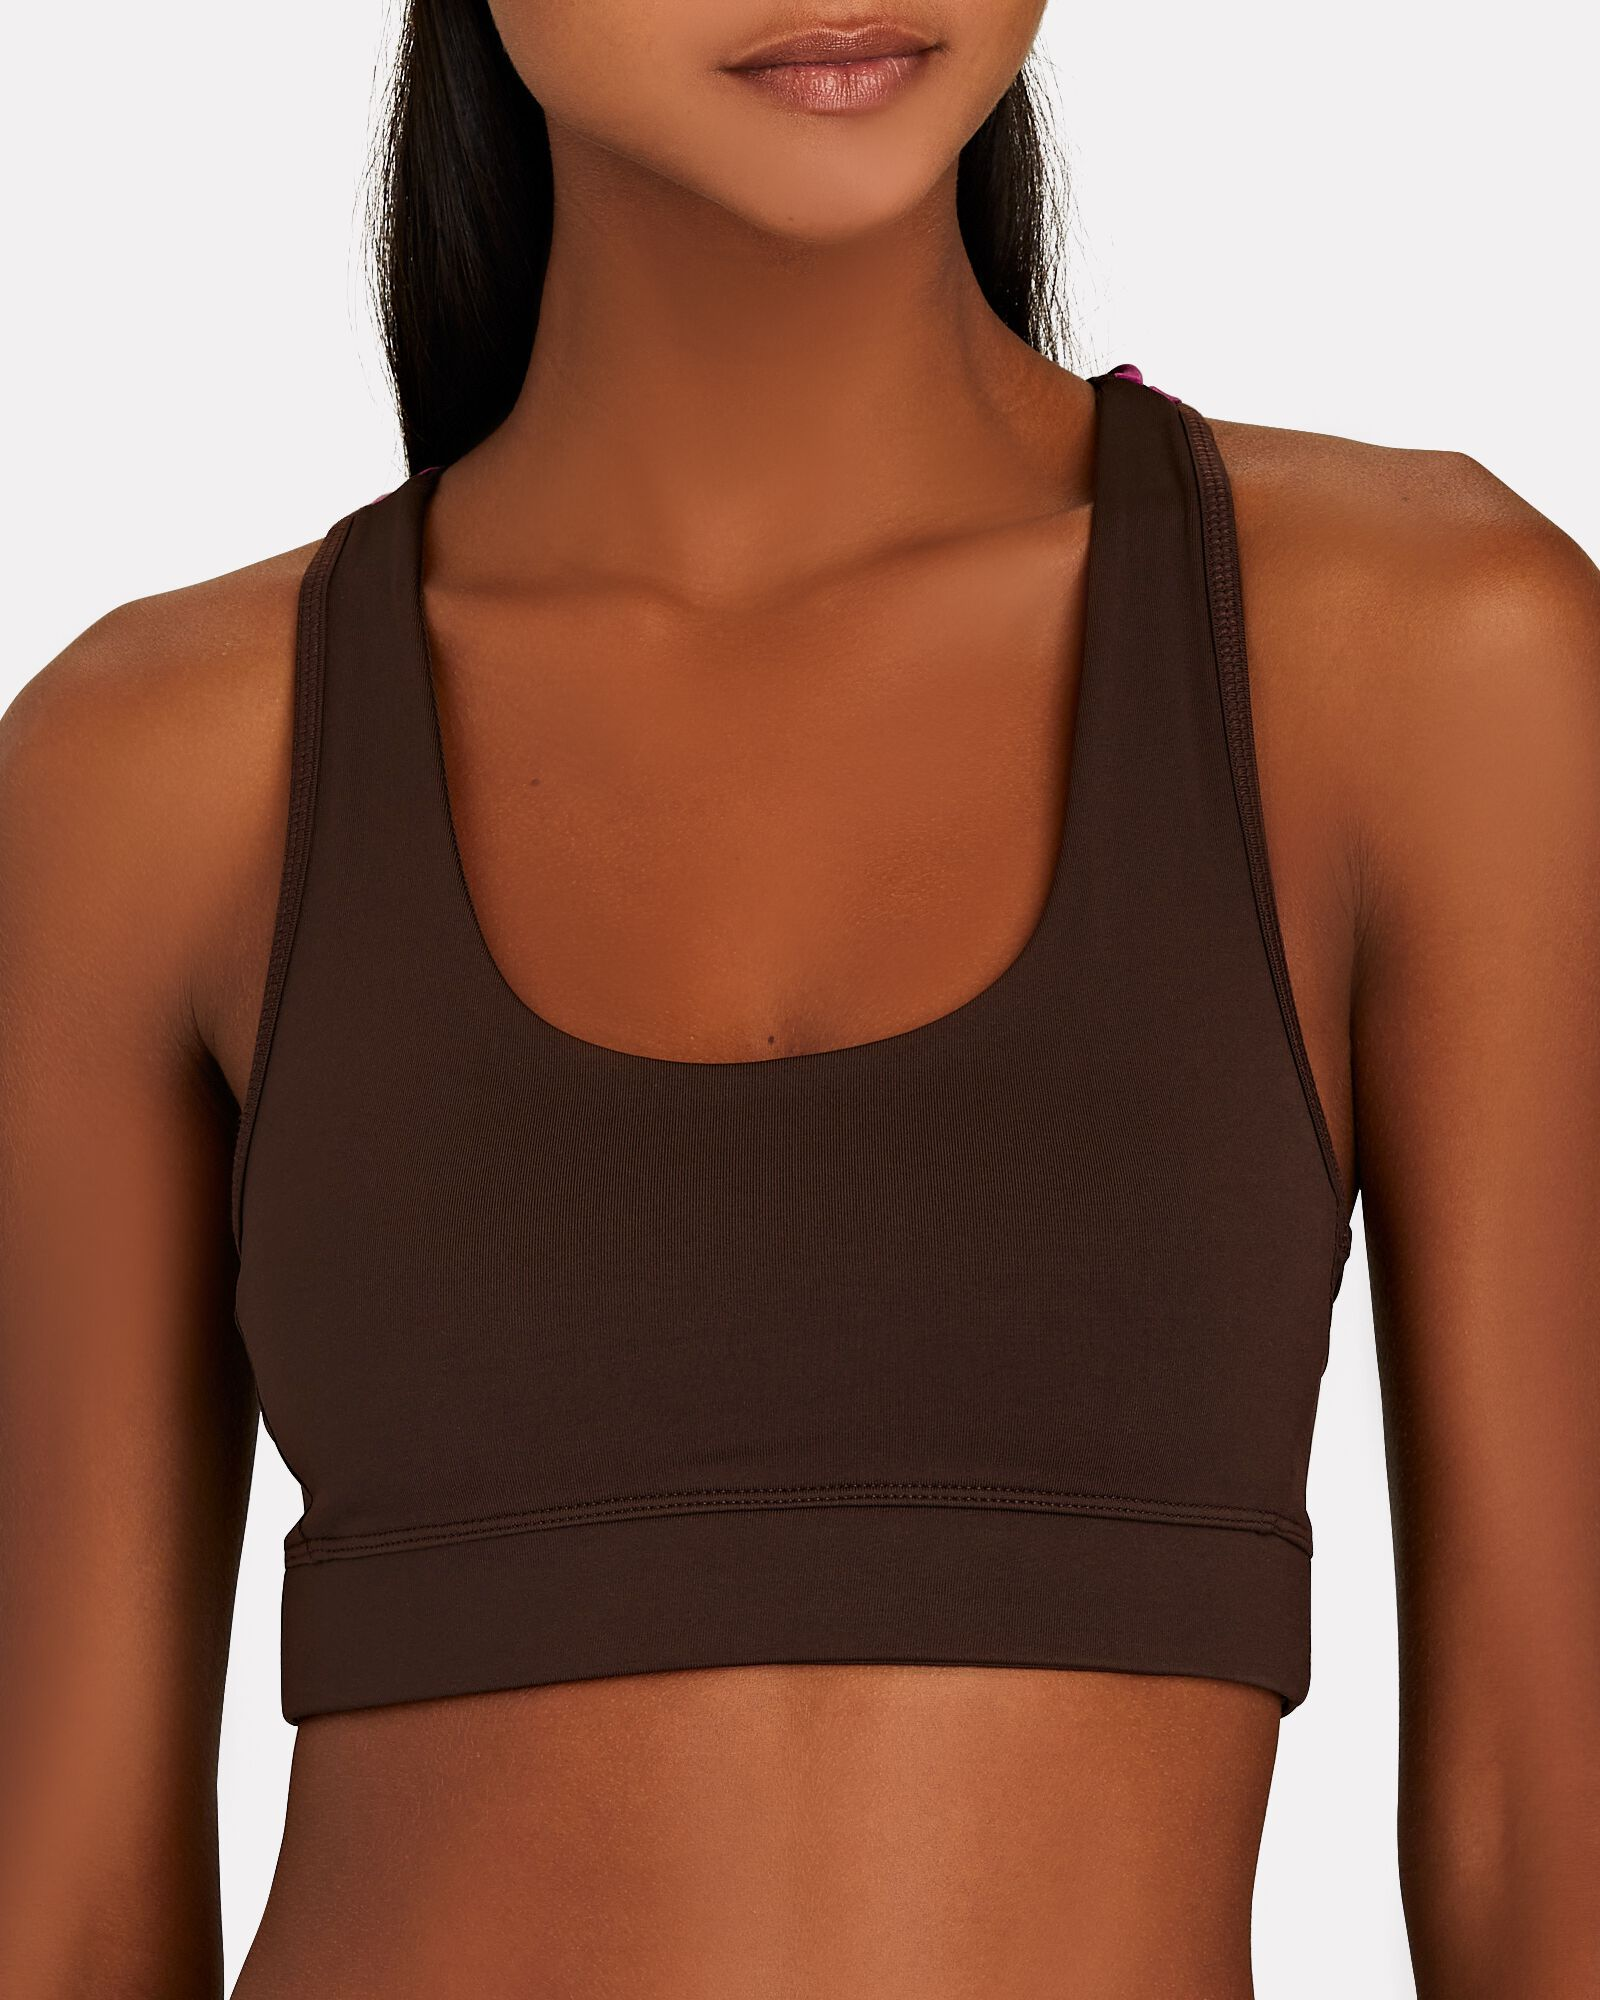 Lilabelle Sports Bra, BROWN, hi-res